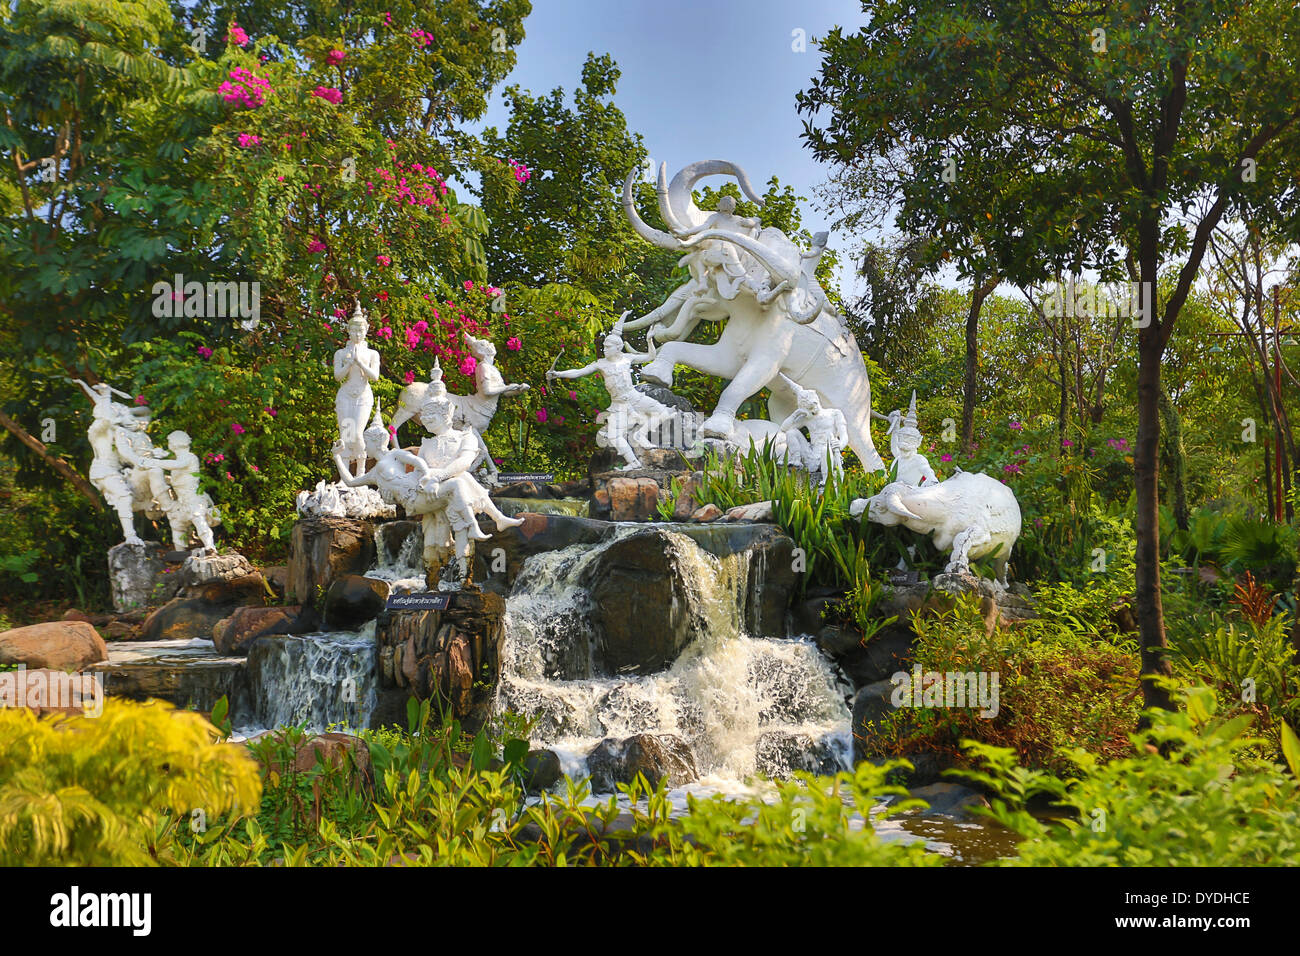 Thailand, Asia, Bangkok, Old, Siam Park, artistic, beautiful, colourful, elephant, garden, monumental, old, park, waterfall - Stock Image